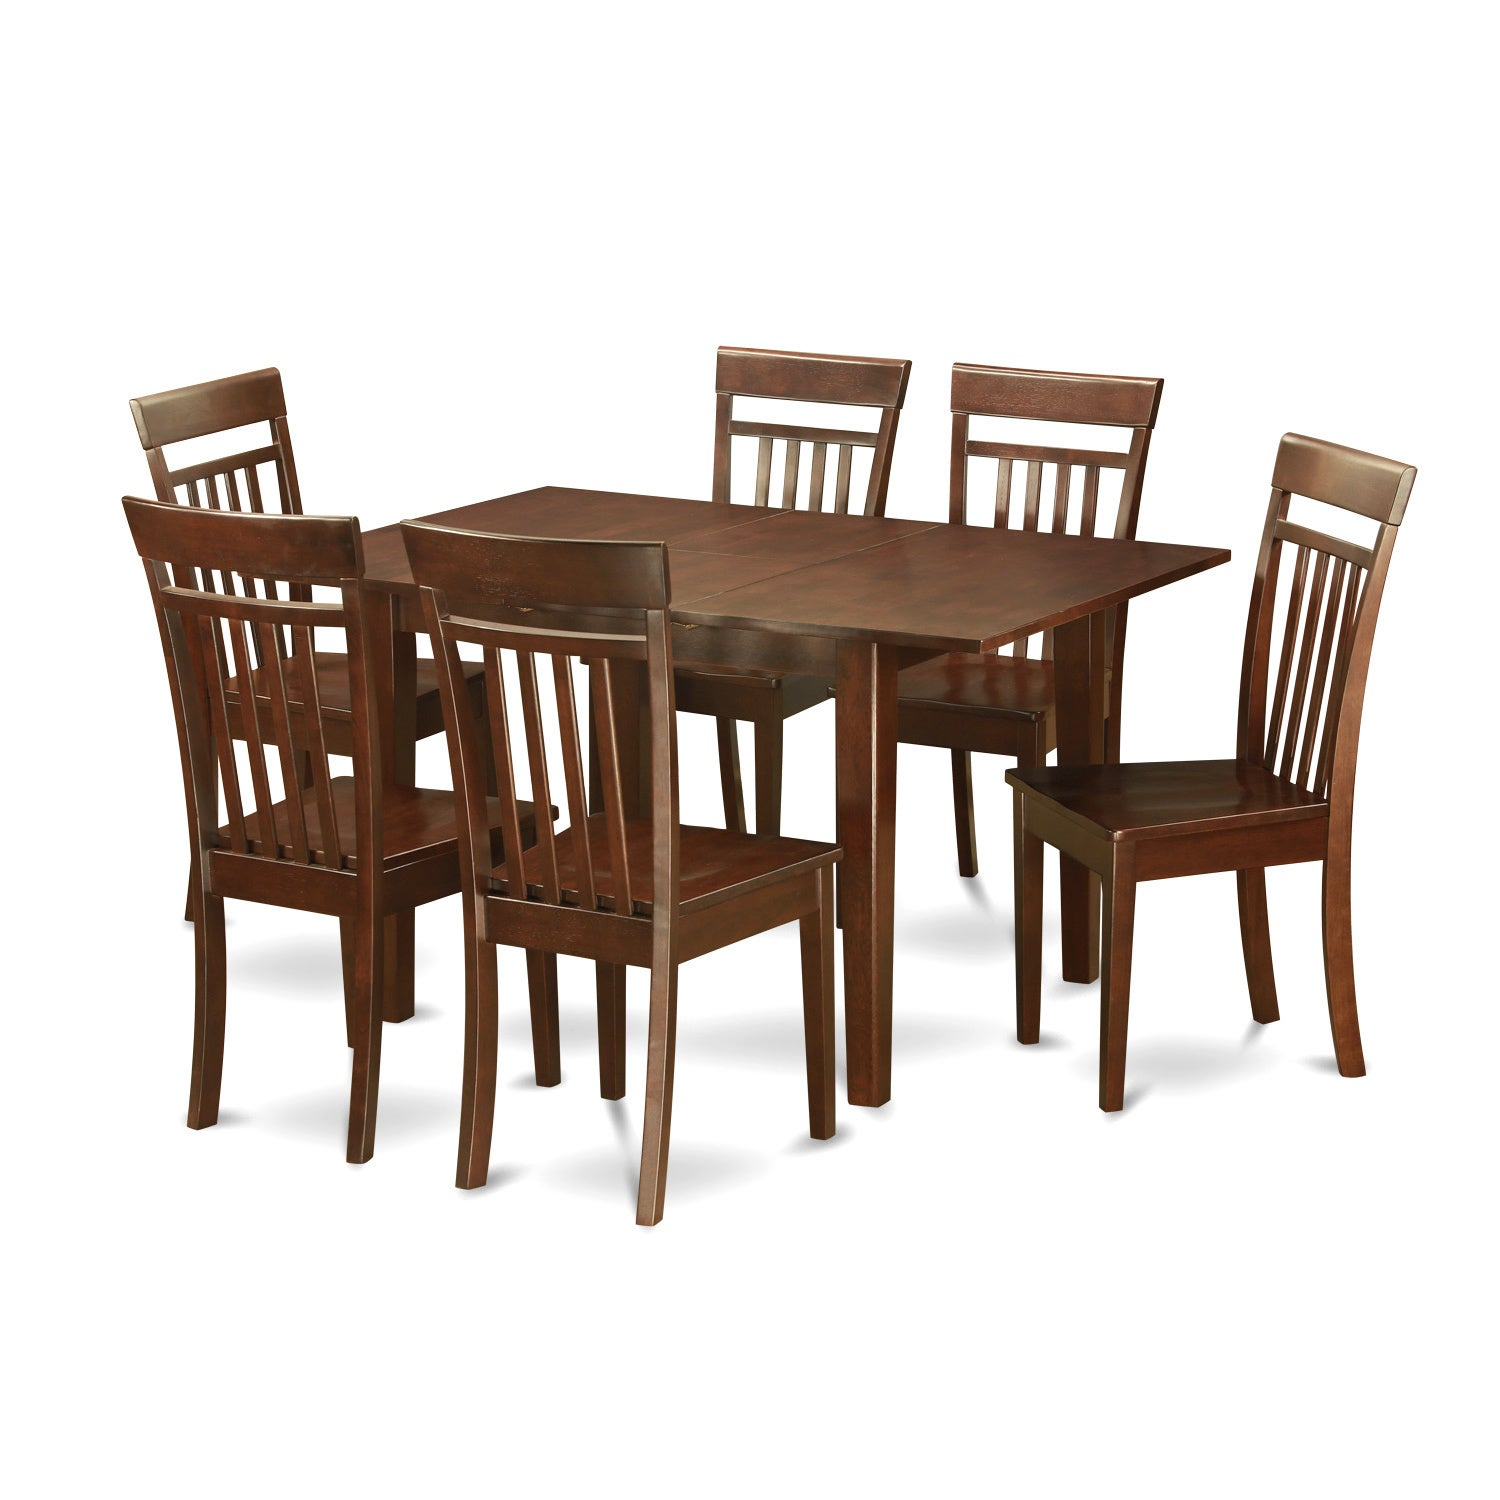 Shop PSCA7-MAH 7-piece Small Kitchen Table Set - Free Shipping Today on